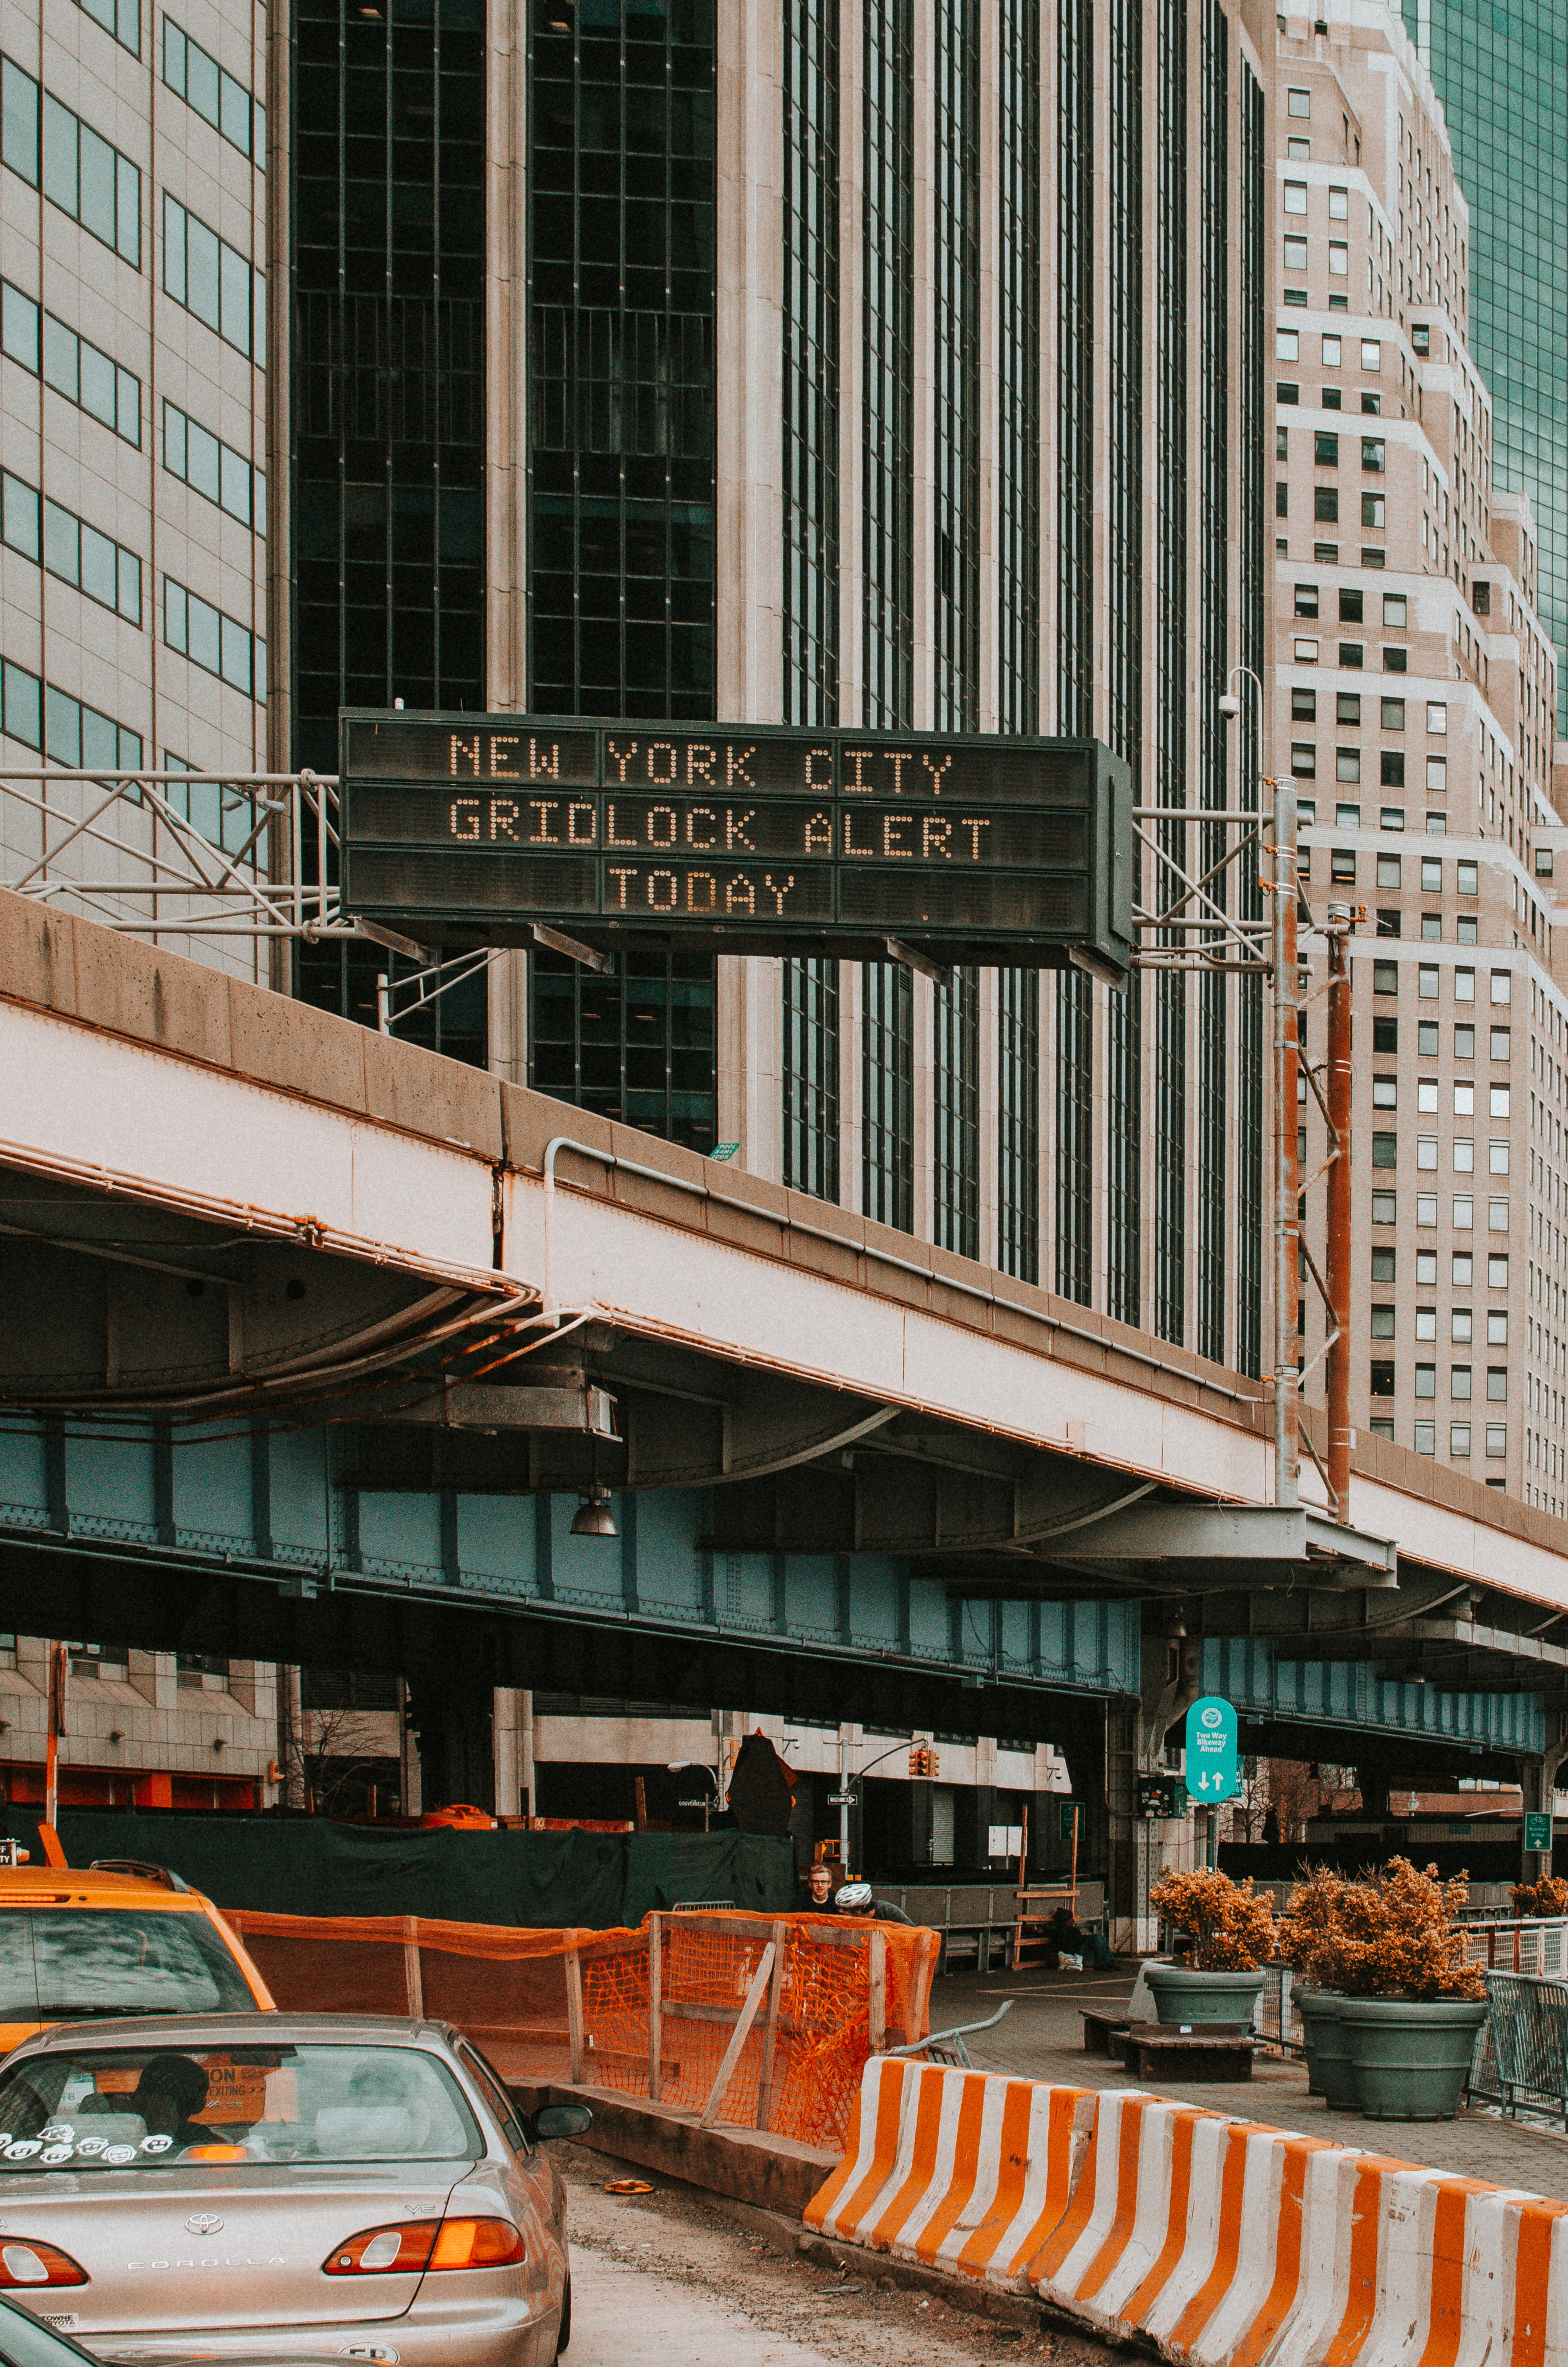 New York City Gridlock Alert Today signage board